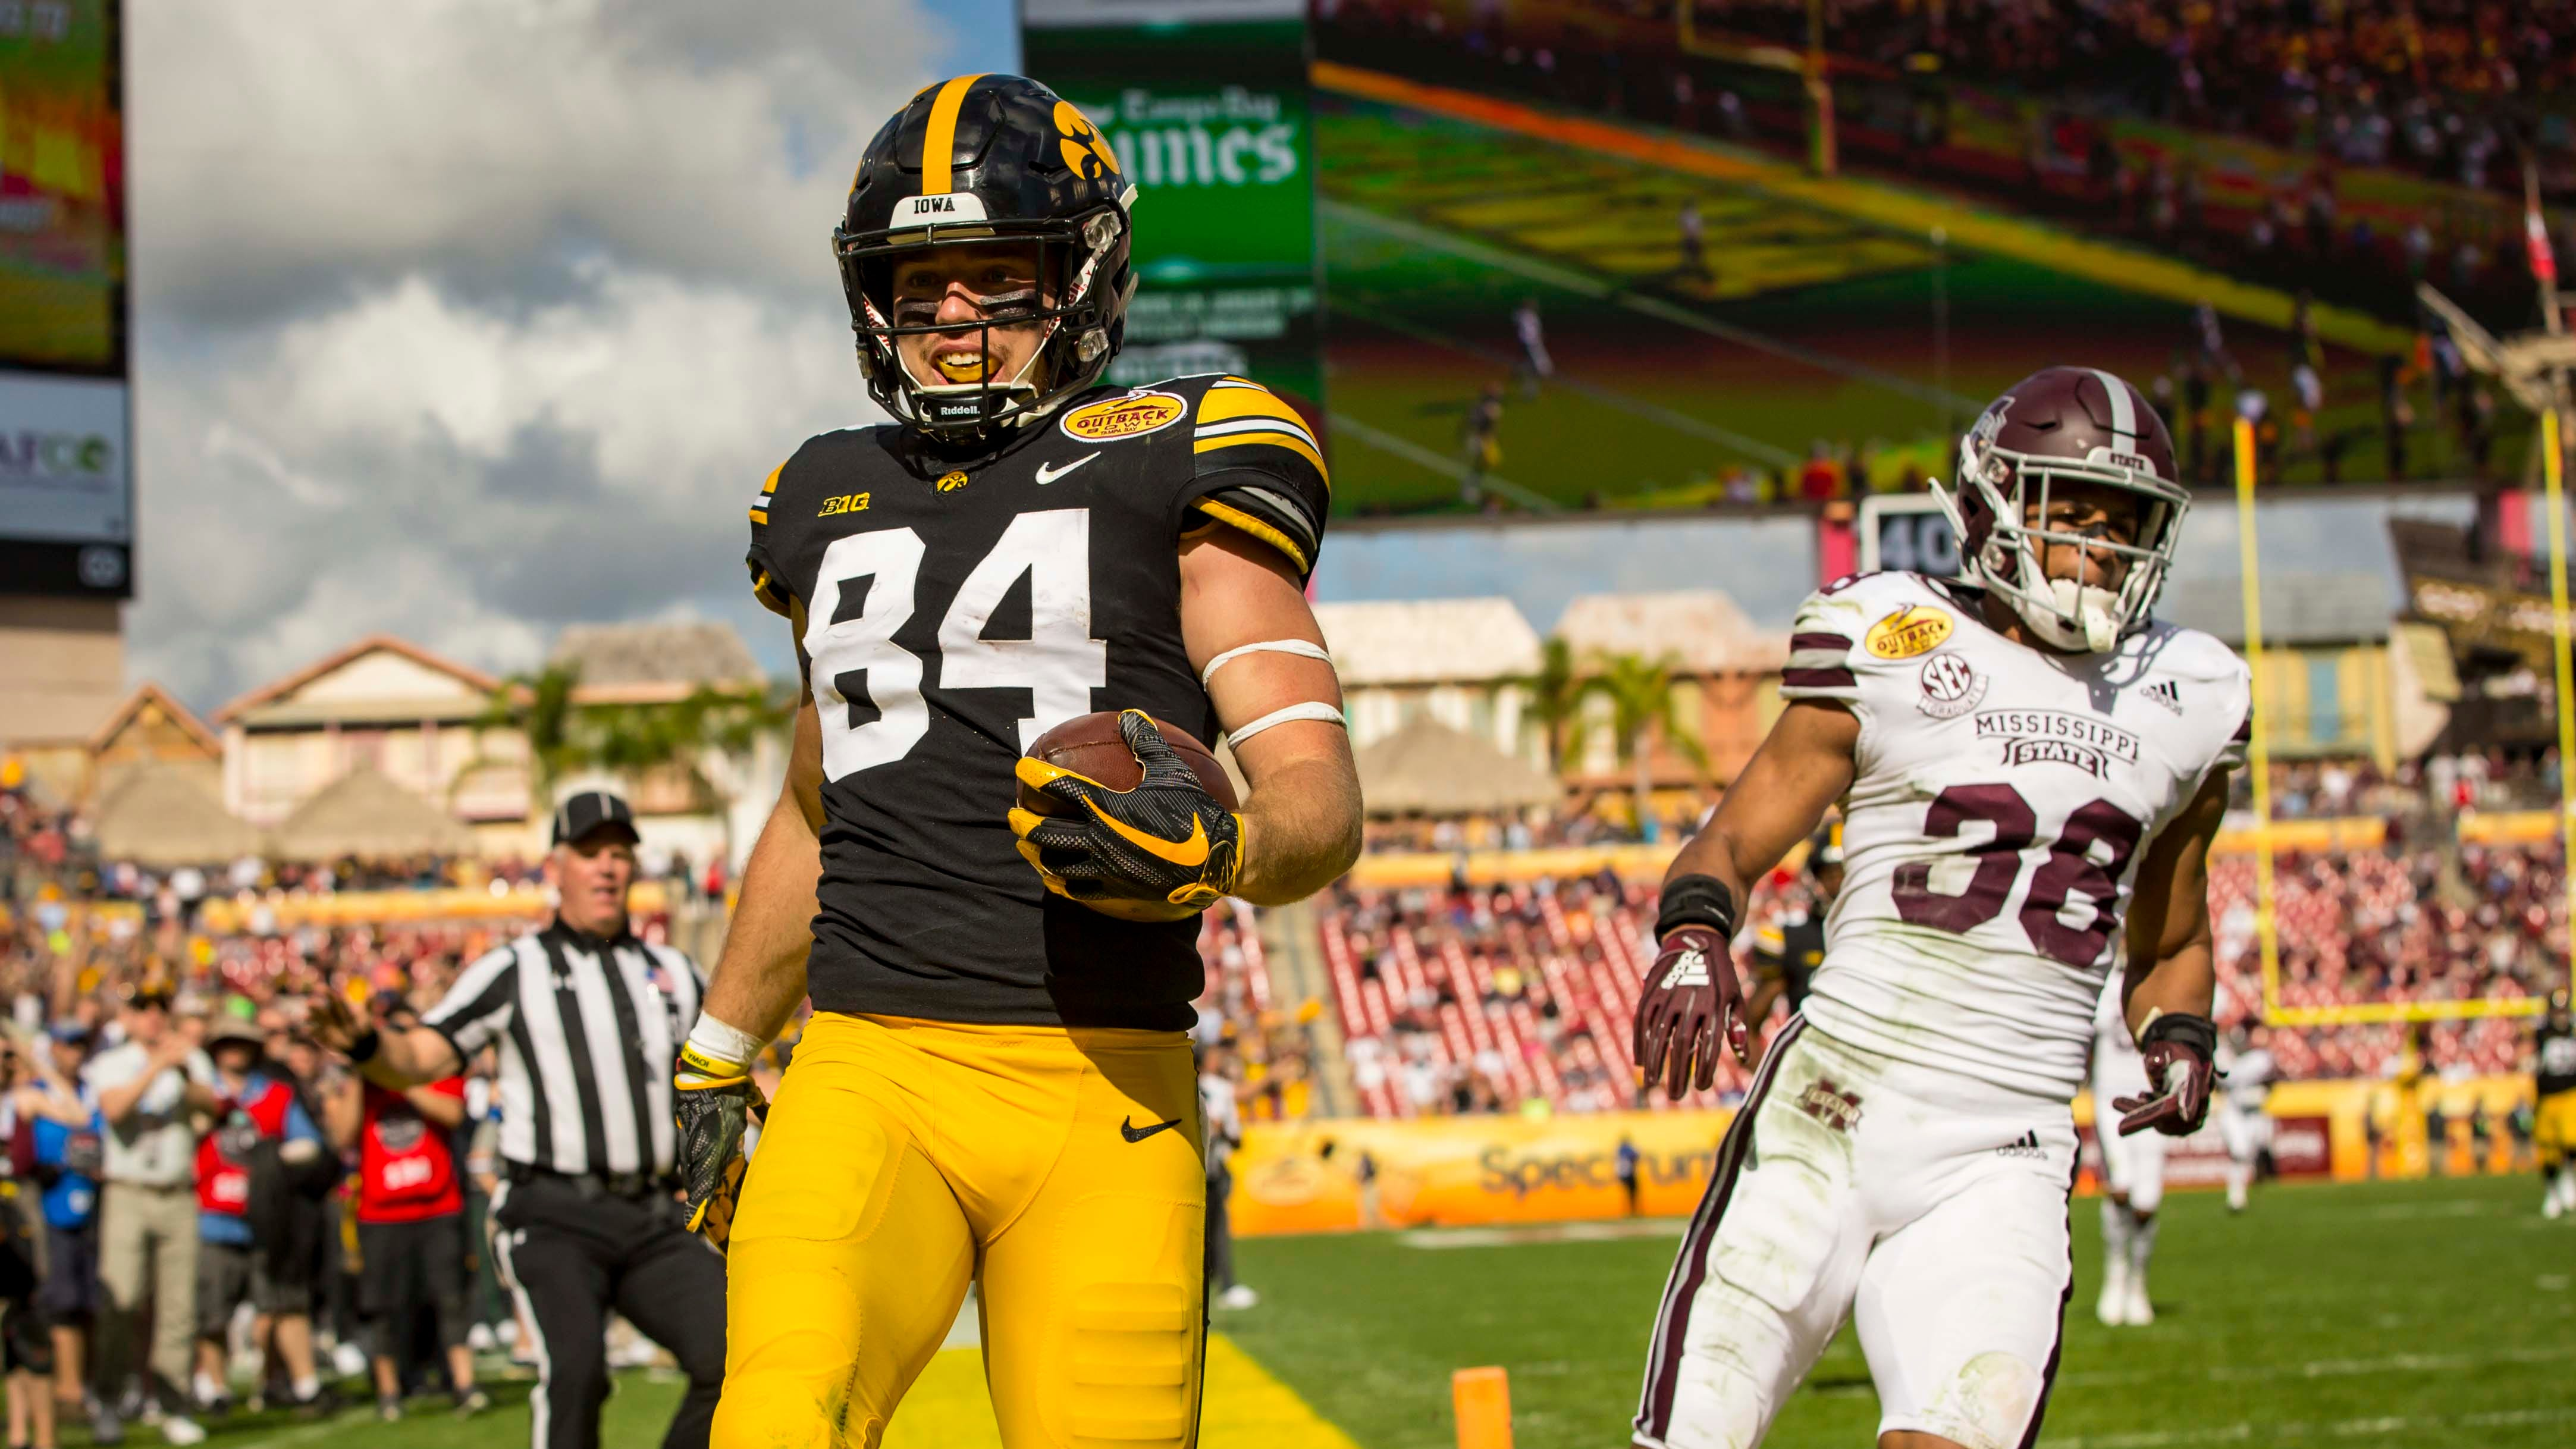 Iowa's Nick Easley scores in front of Mississippi State's Johnathan Abram in the first half at the  Outback Bowl Tues., Jan. 1, 2019, at Raymond James Stadium in Tampa, Florida. Iowa takes a 17-6 lead over Miss. St. into halftime.